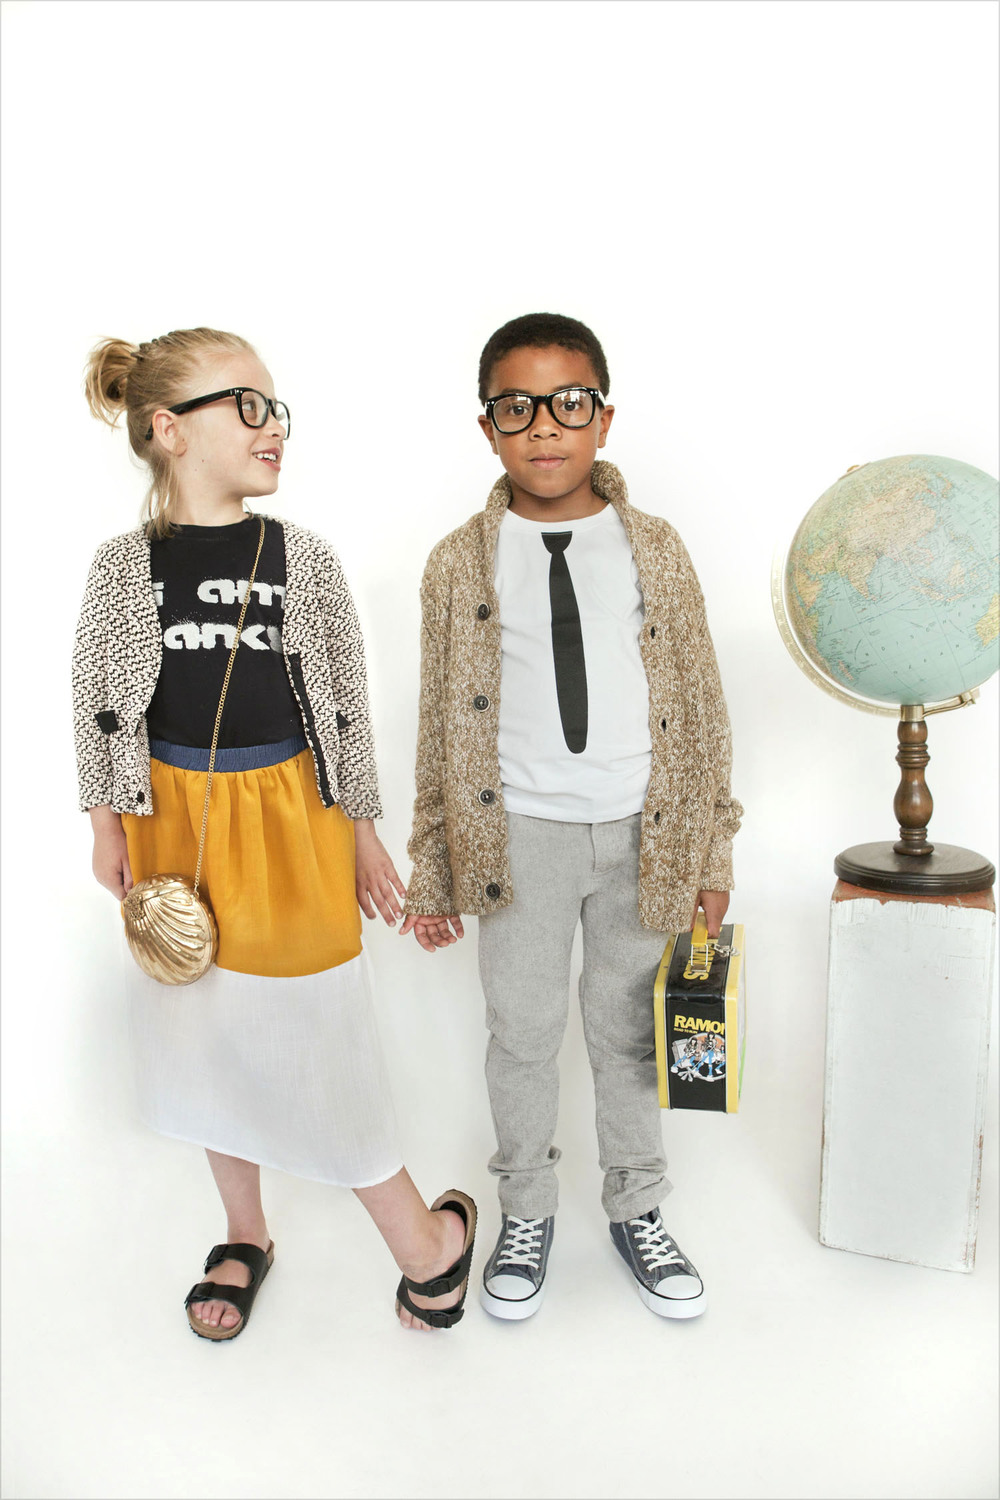 "ON HER: Teeny Tiny Optics glasses, Hatch for Kids ""I am Banksy"" tee shirt, Millions of Colors jacket, La Miniatura skirt, Zara sandals, vintage bag.  ON HIM: Teeny Tiny Optics glasses, Zara sweater, Oh Baby London long sleeve tee shirt, Zara trousers, H & M sneakers, Ramones lunchbox."